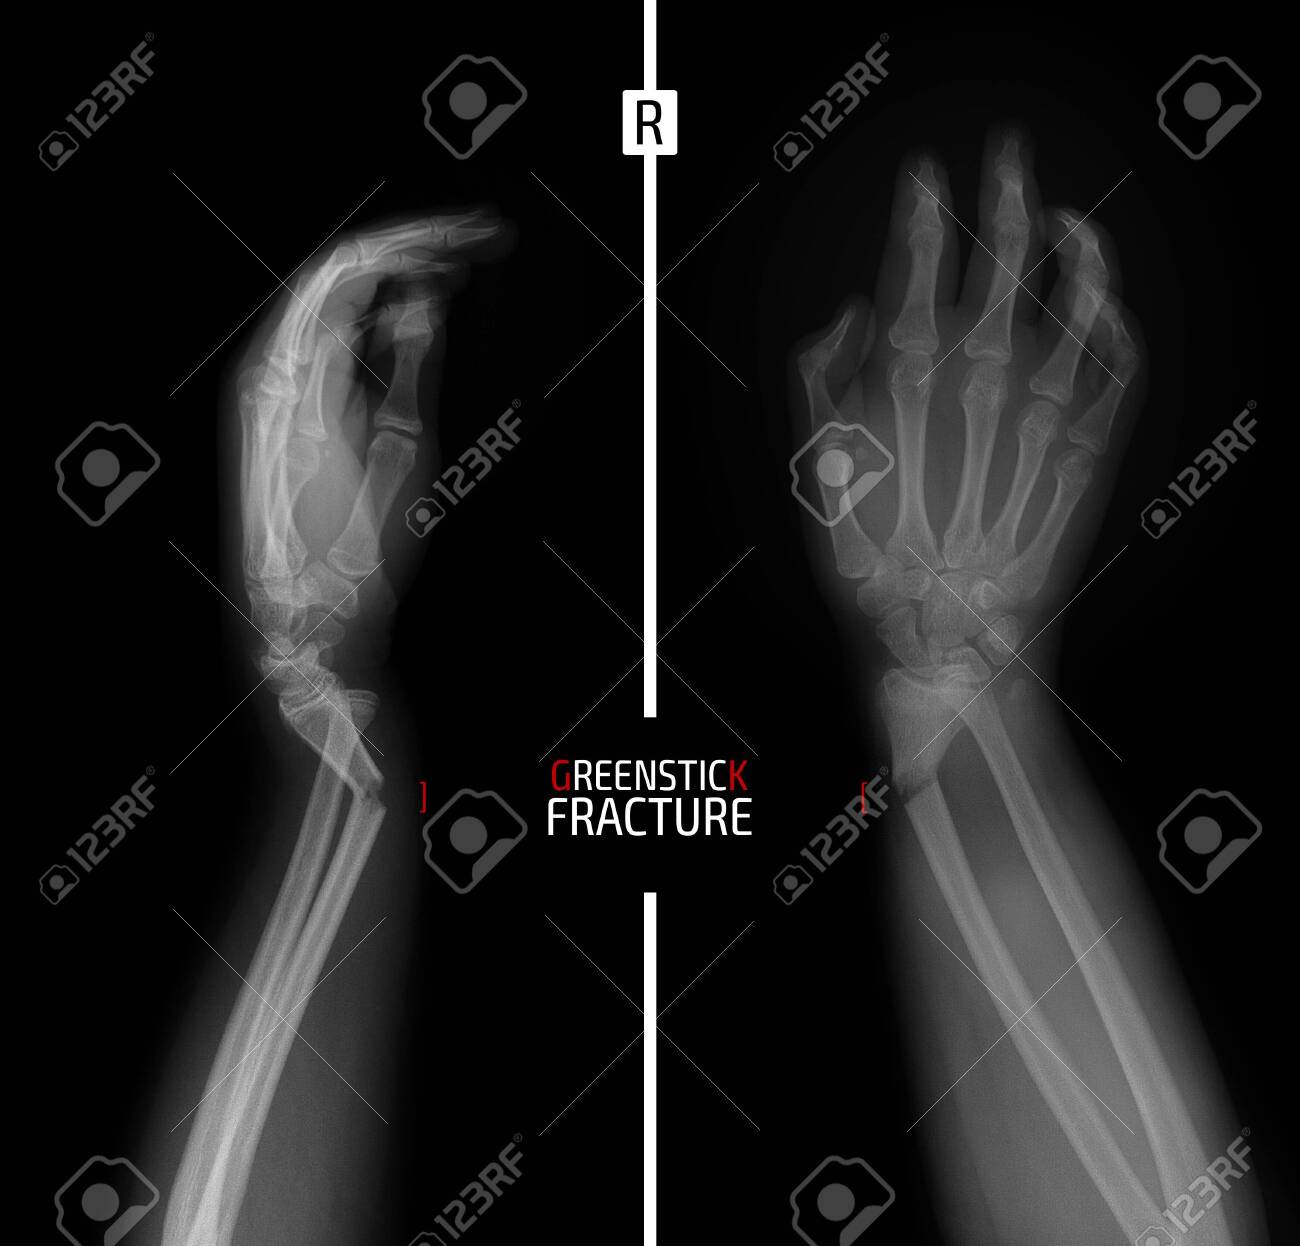 X-ray of the wrist. Greenstick fracture of the radius. Marker. - 151390009